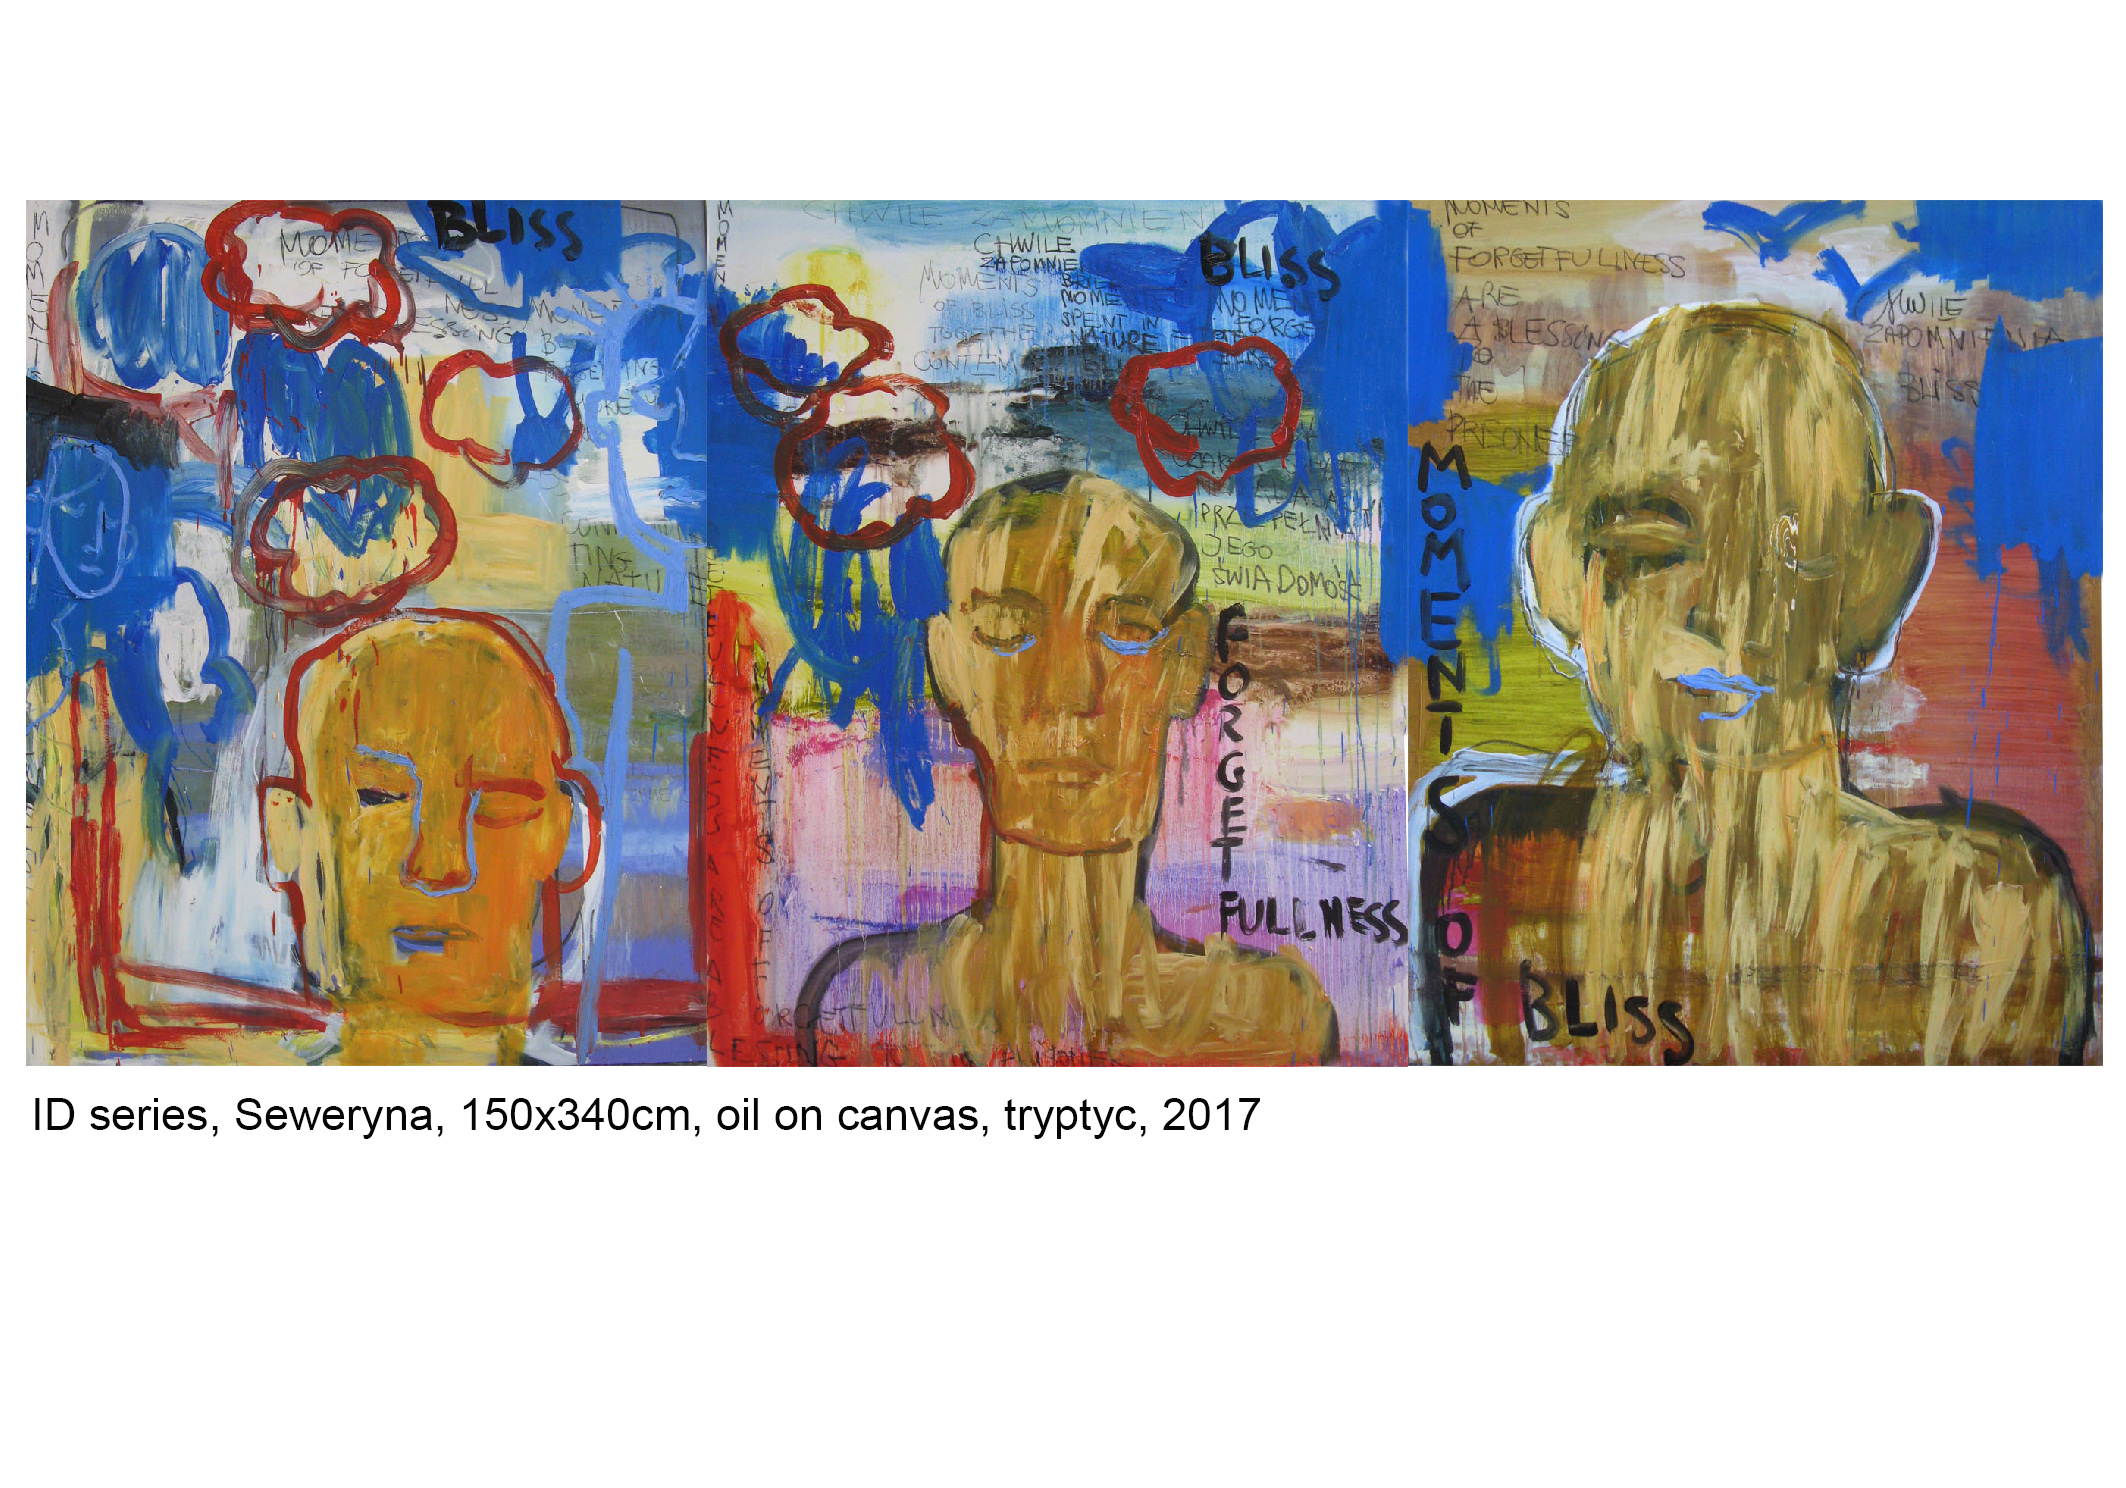 Seweryna's story, tryptych, oil on canvas, 150x340cm, 2017